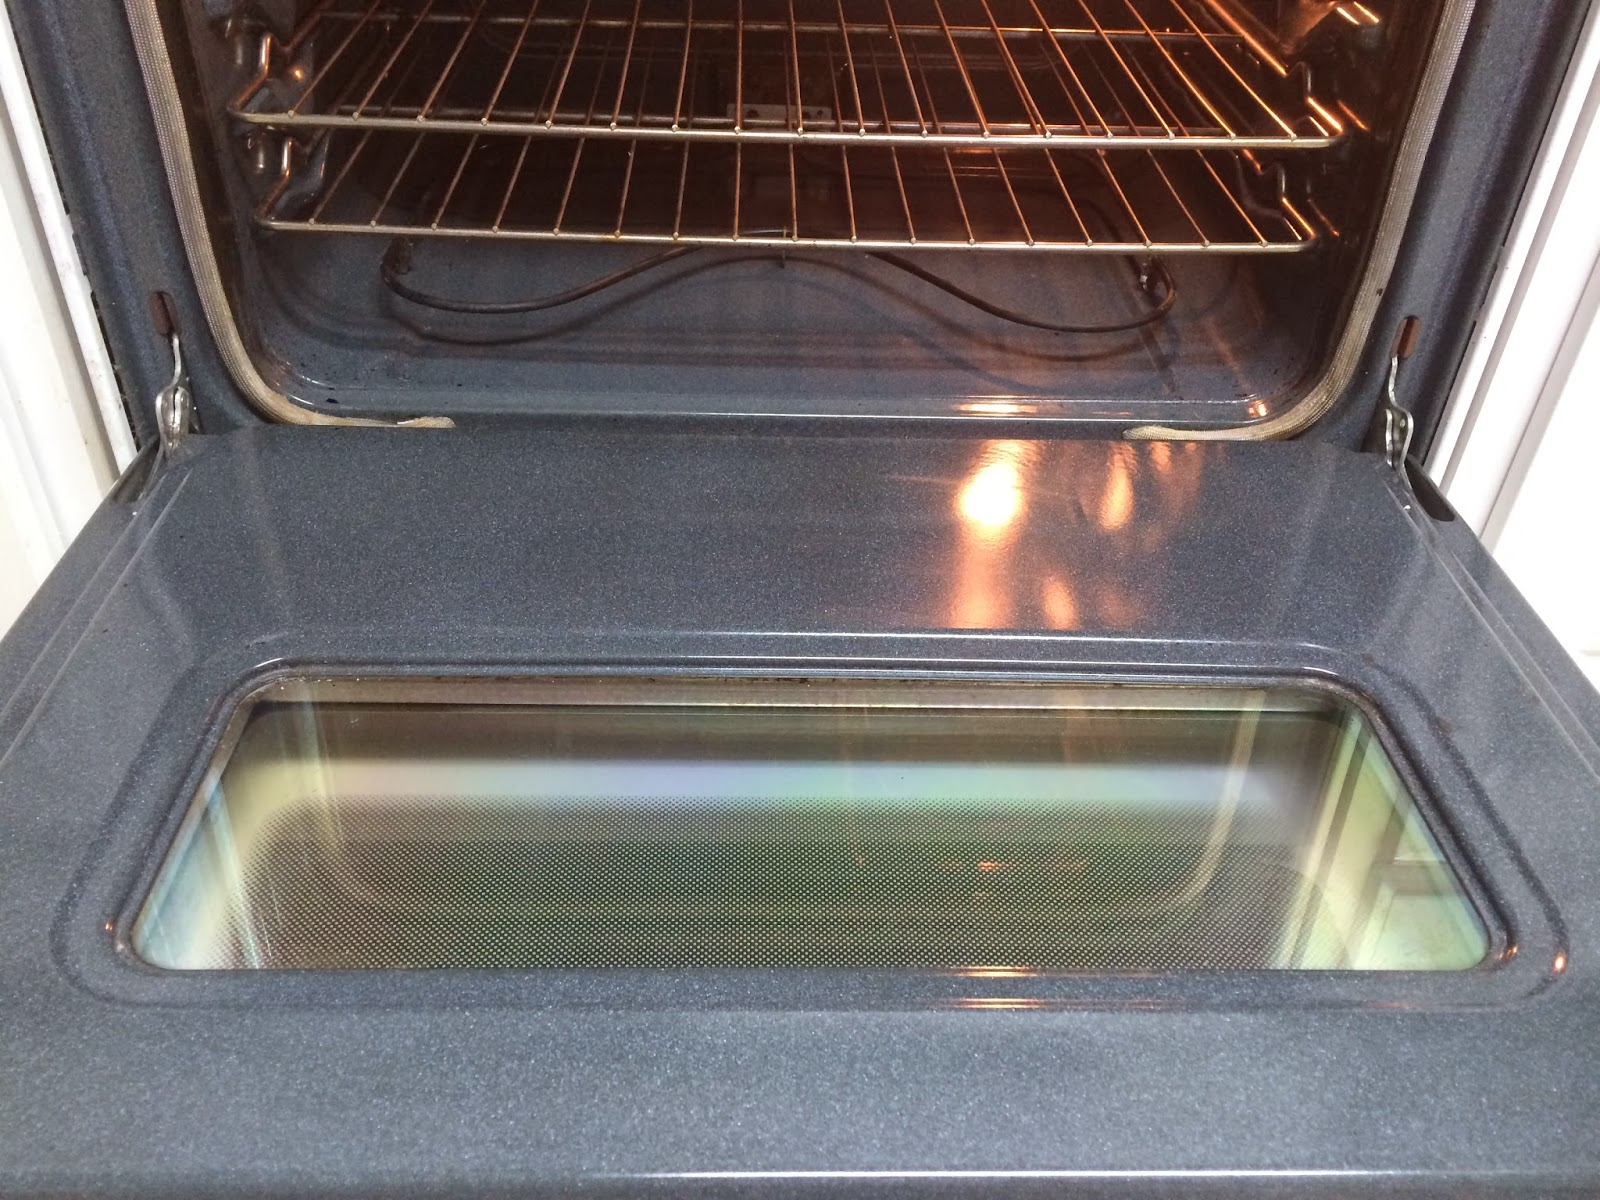 Natural Made Simple How To Clean Your Oven Without Chemicals